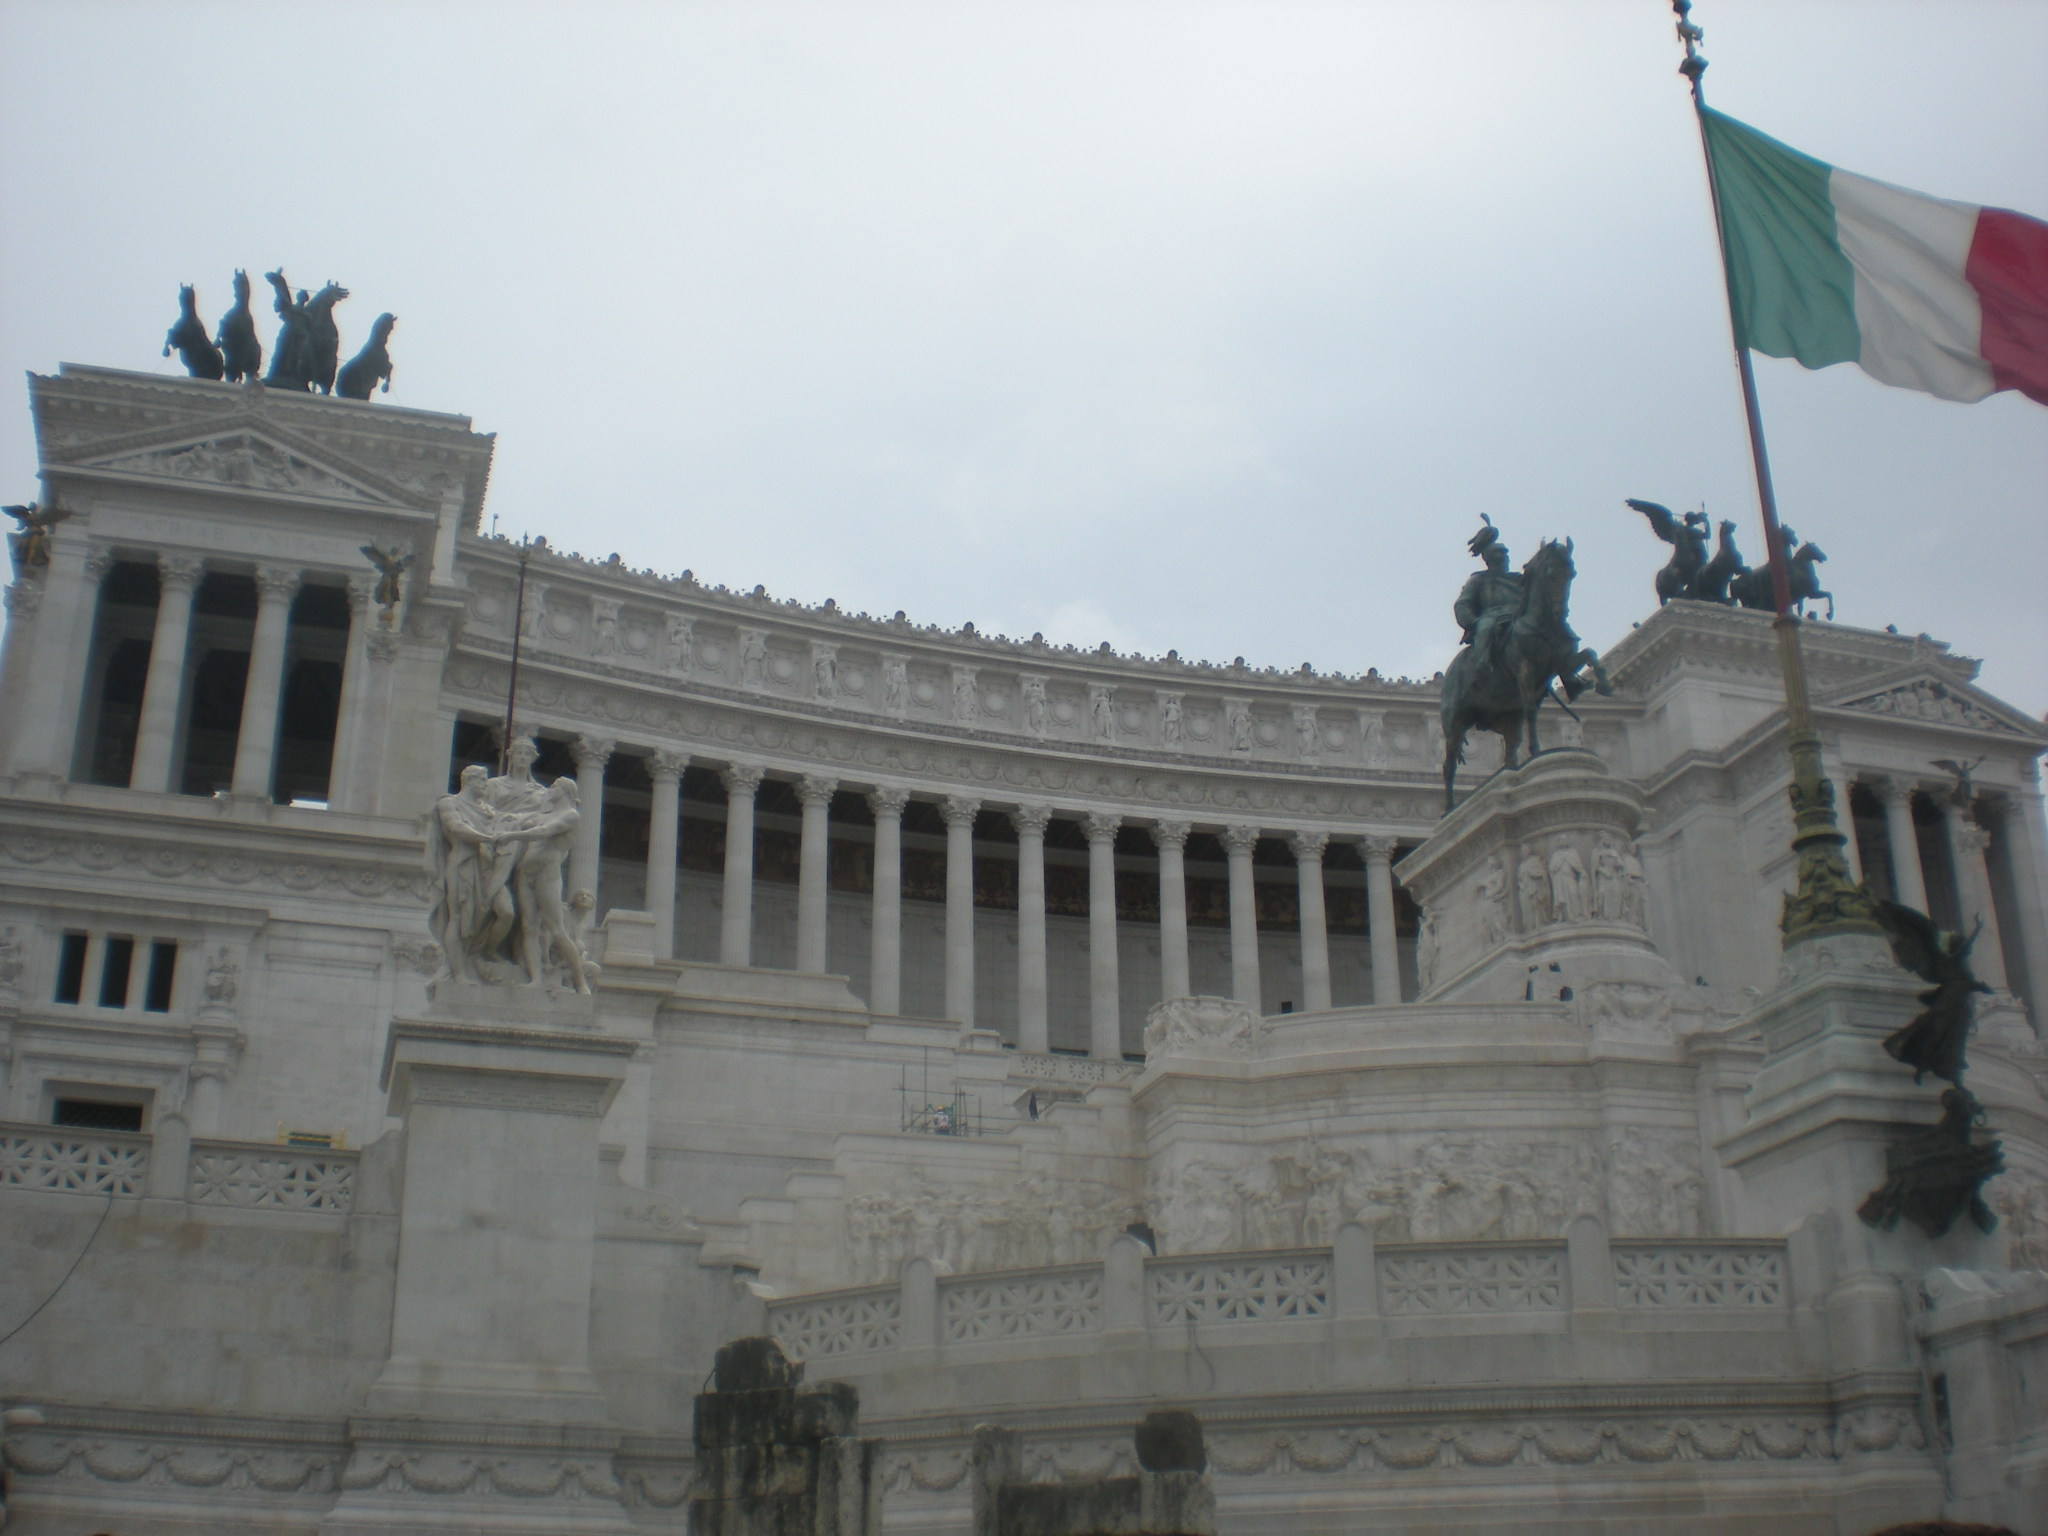 Vittorio Emanuele II monument - side view, Rome, Italy (9611407032).jpg